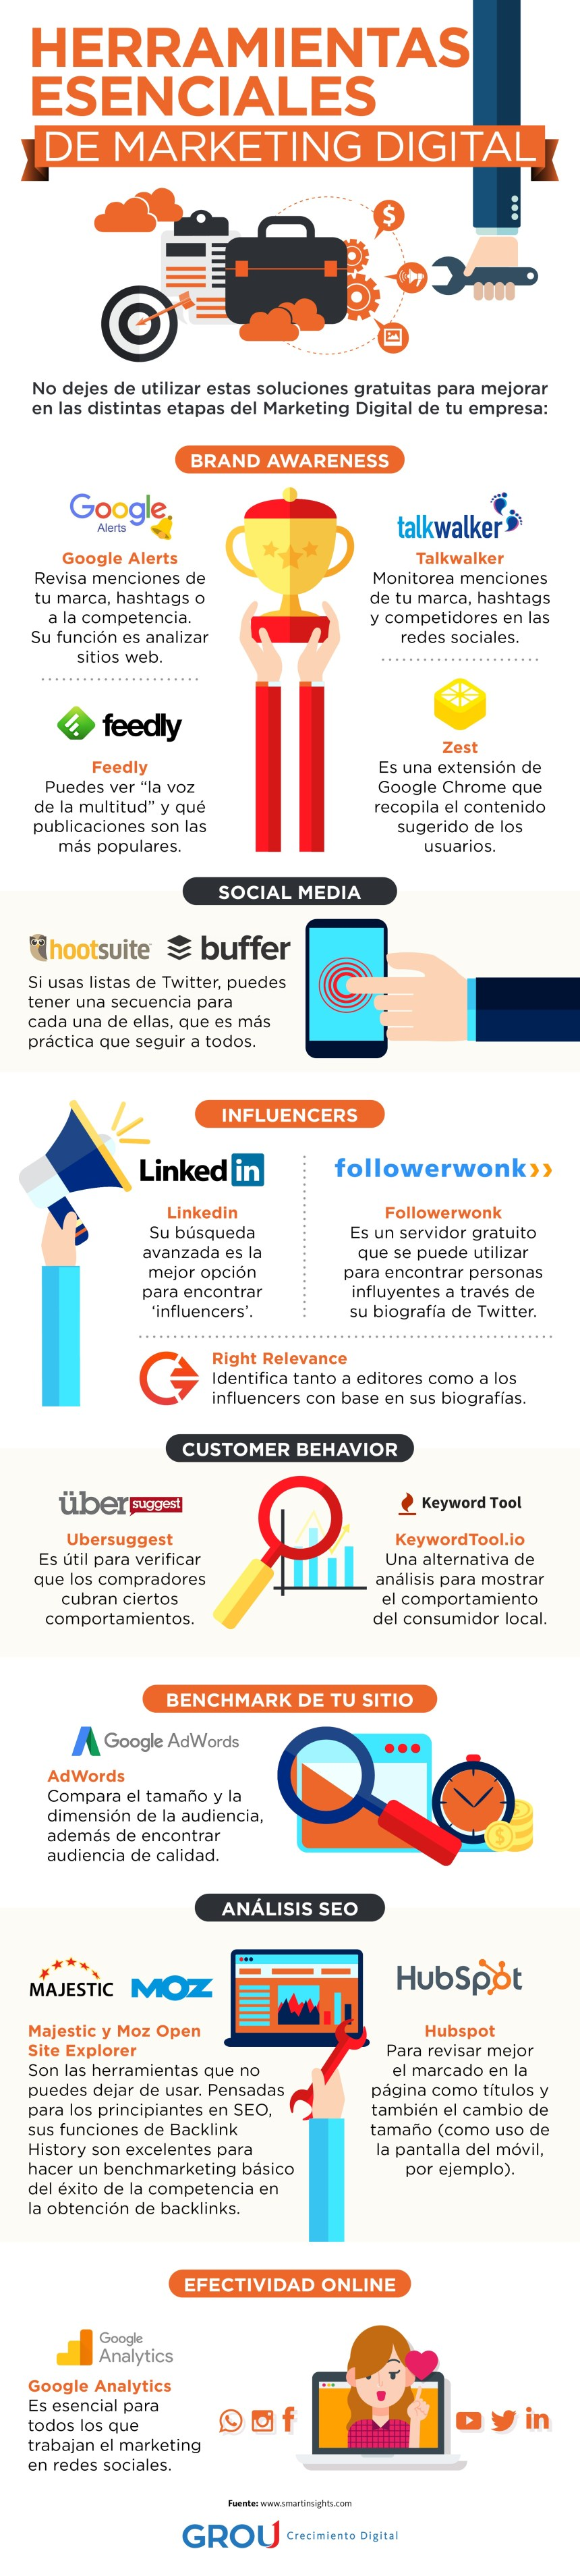 Herramientas esenciales de Marketing Digital